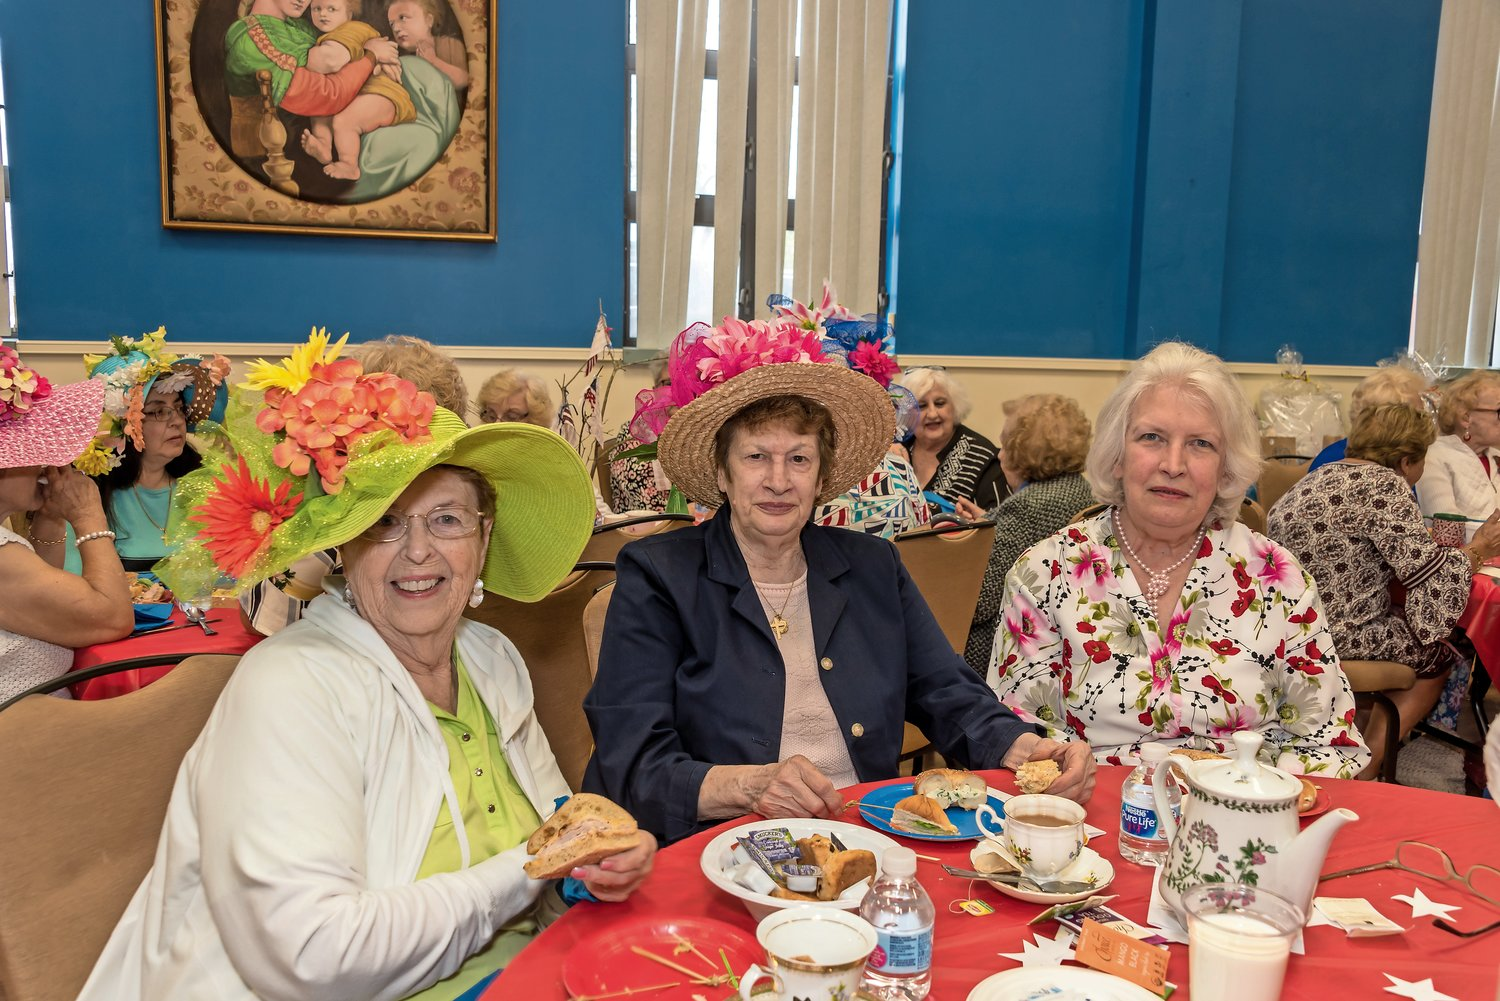 Felicia Plumb, left, Angie Capabianco and Elsa Fries enjoyed the sandwiches that were included at the Mad Hatter's Tea.